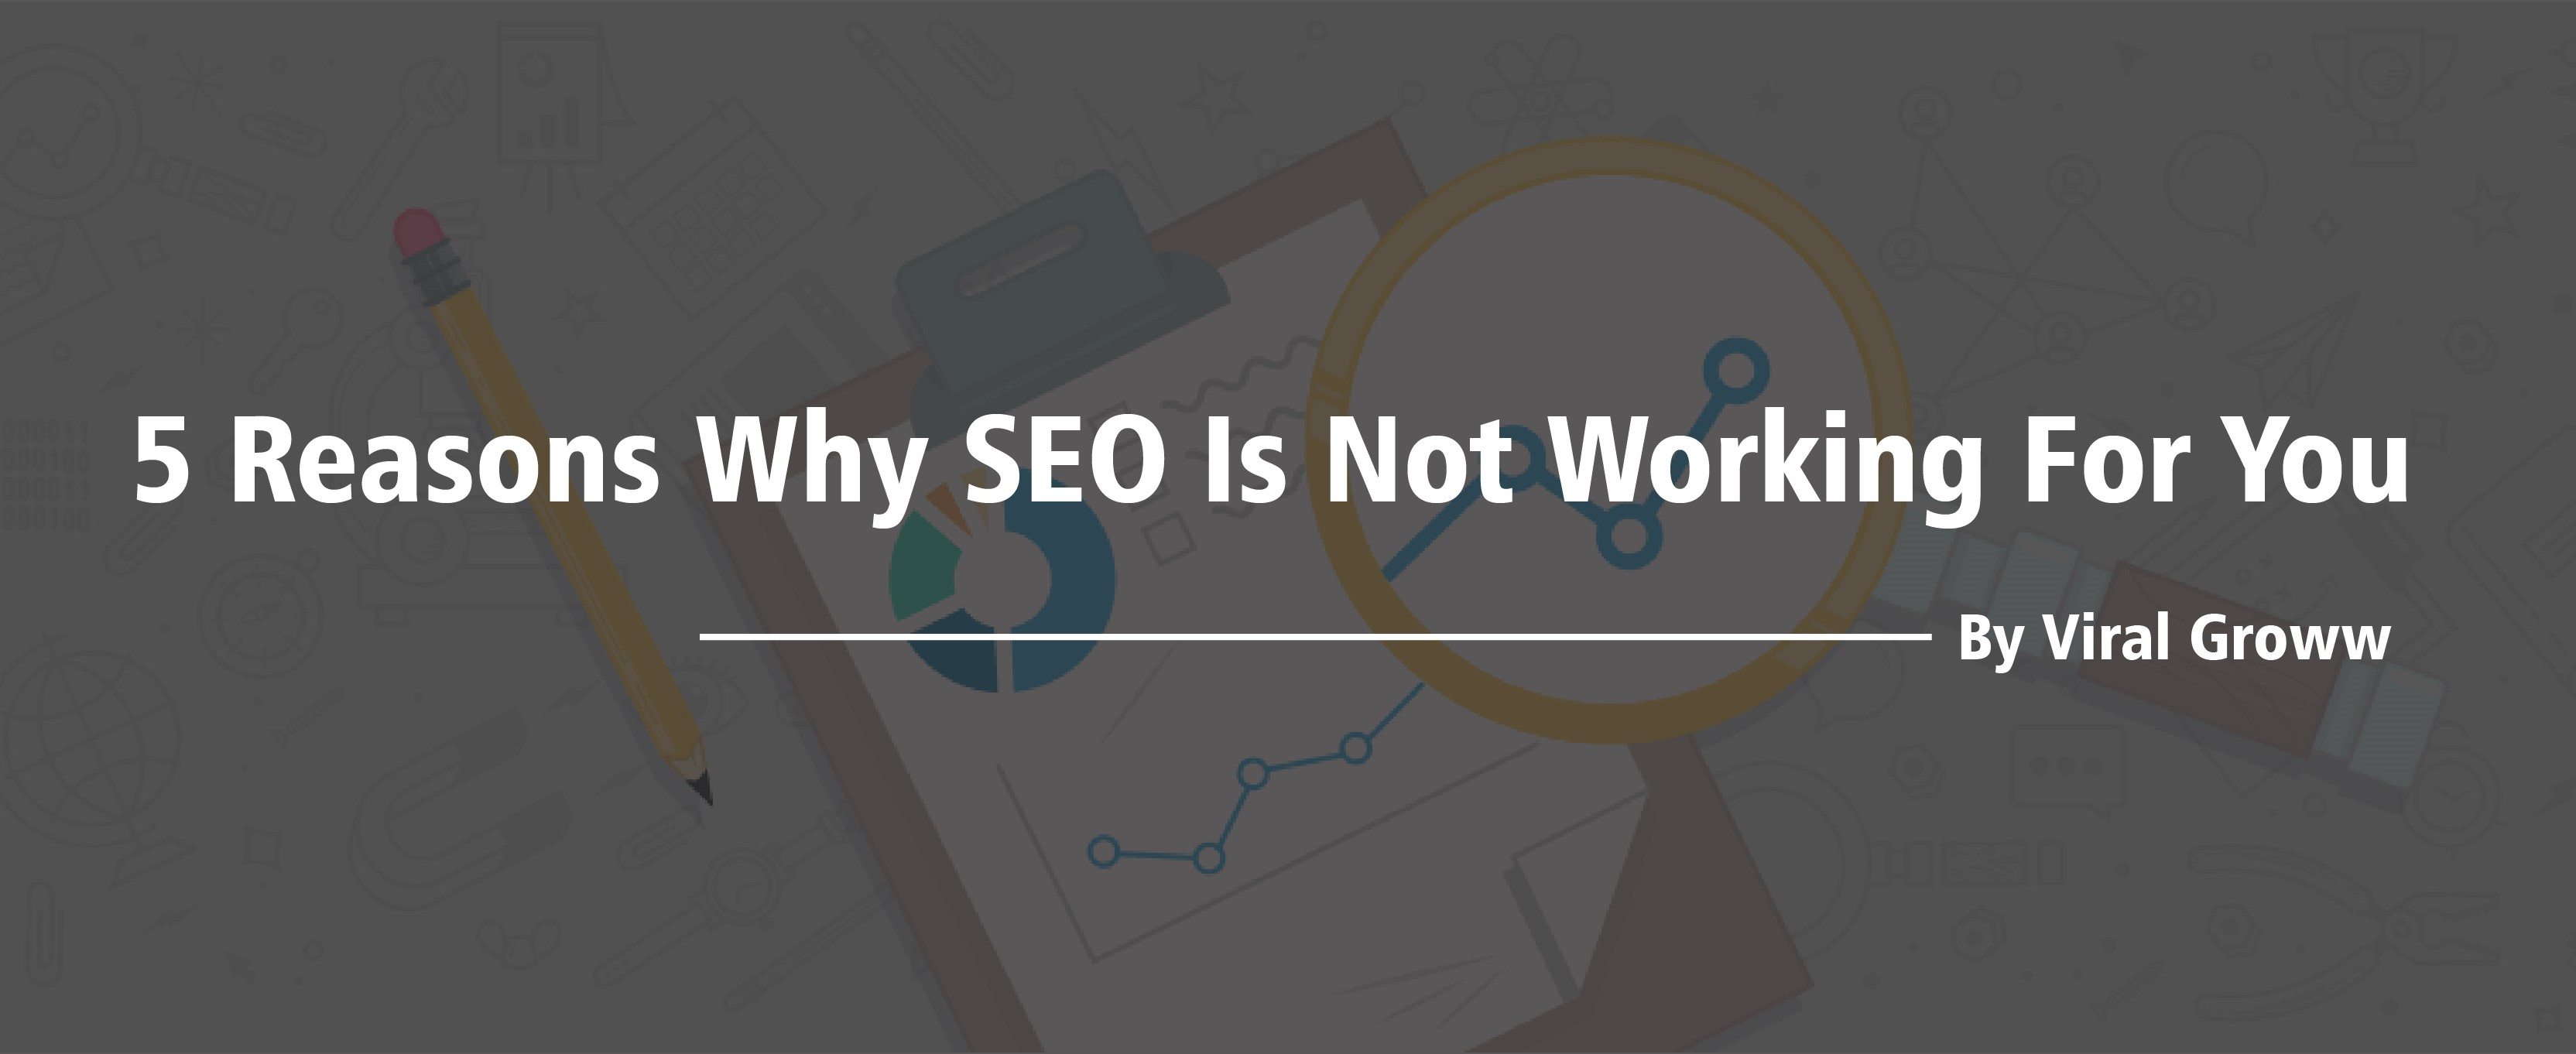 5 Reasons why SEO is not working for you